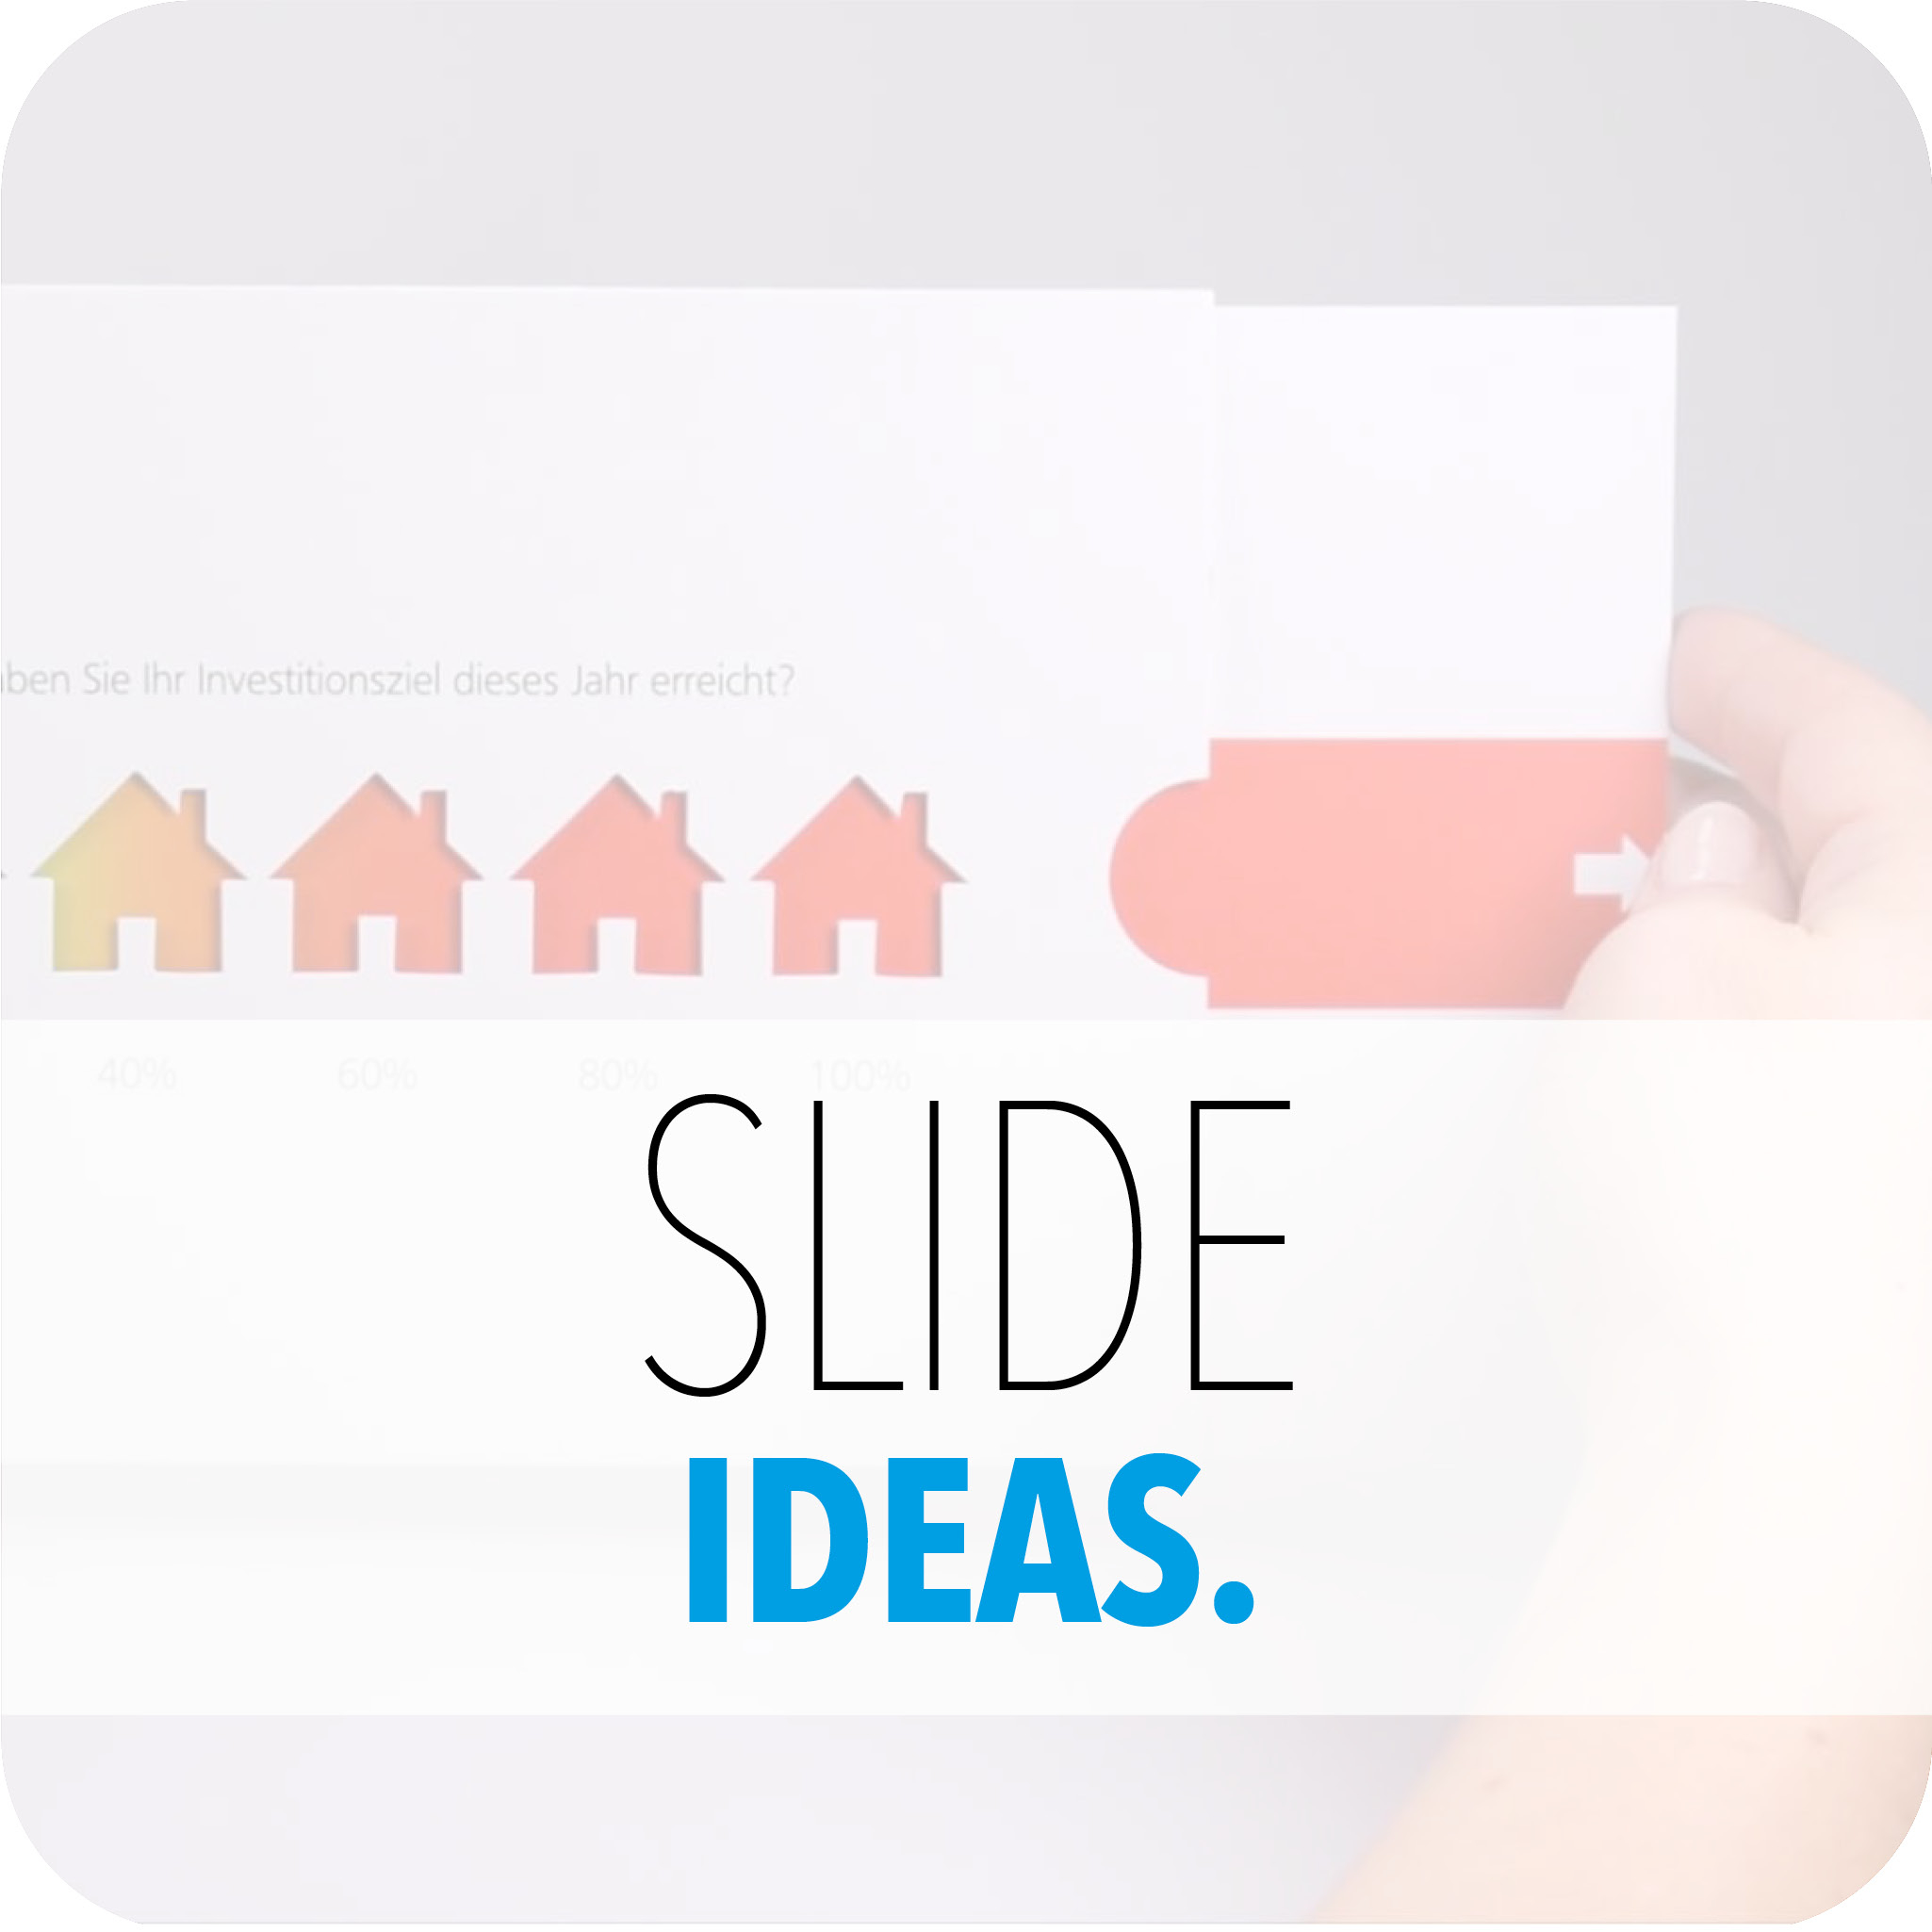 SLIDE IDEAS